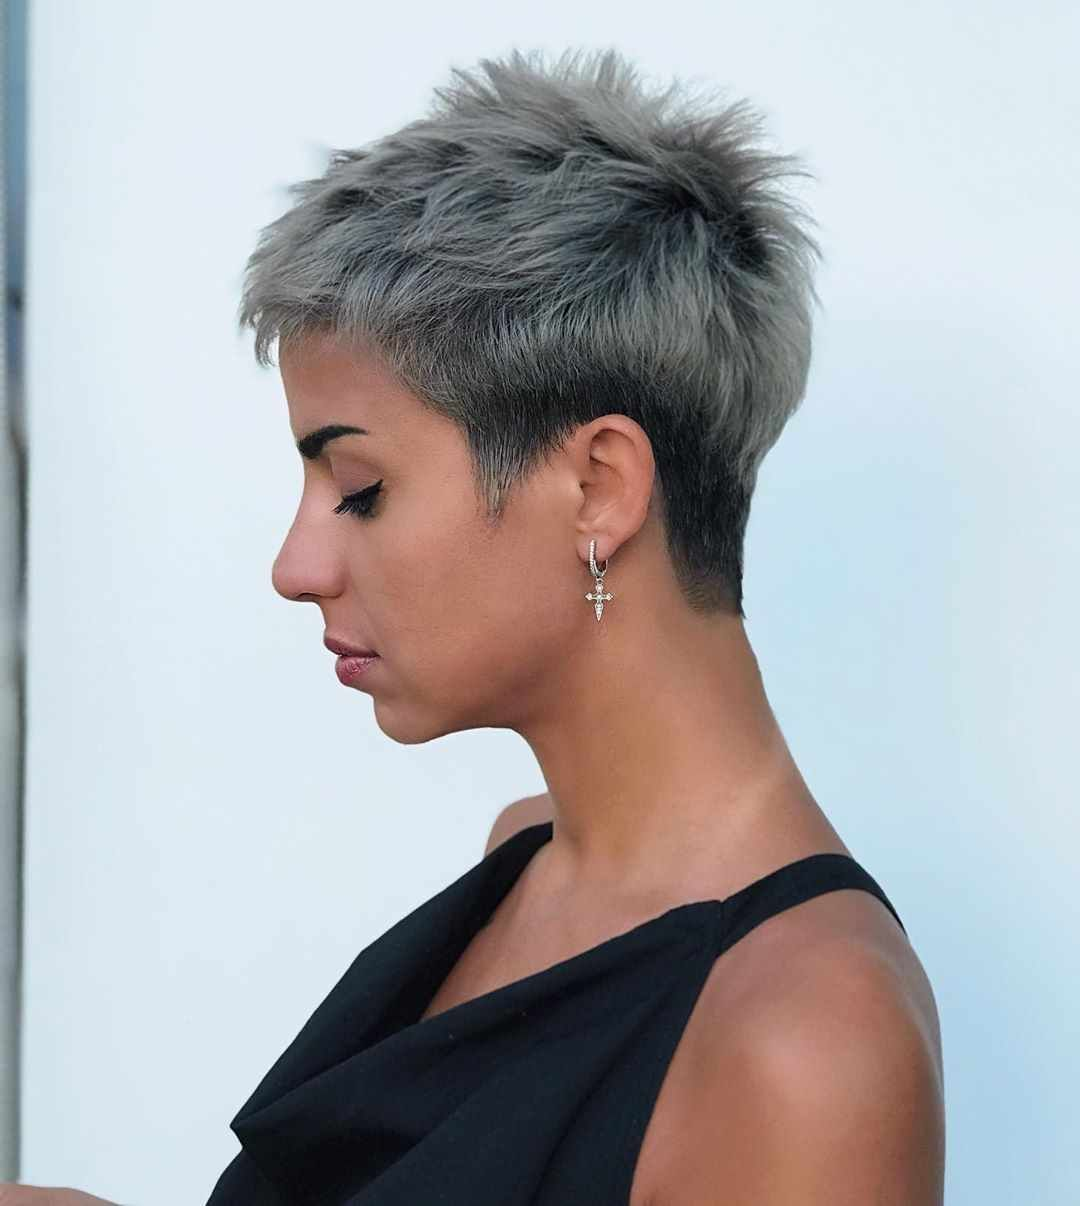 50 Latest Pixie And Bob Haircuts For Women Cute Hairstyles 2019 Short Hair Styles Bobs Haircuts Short Hair Trends